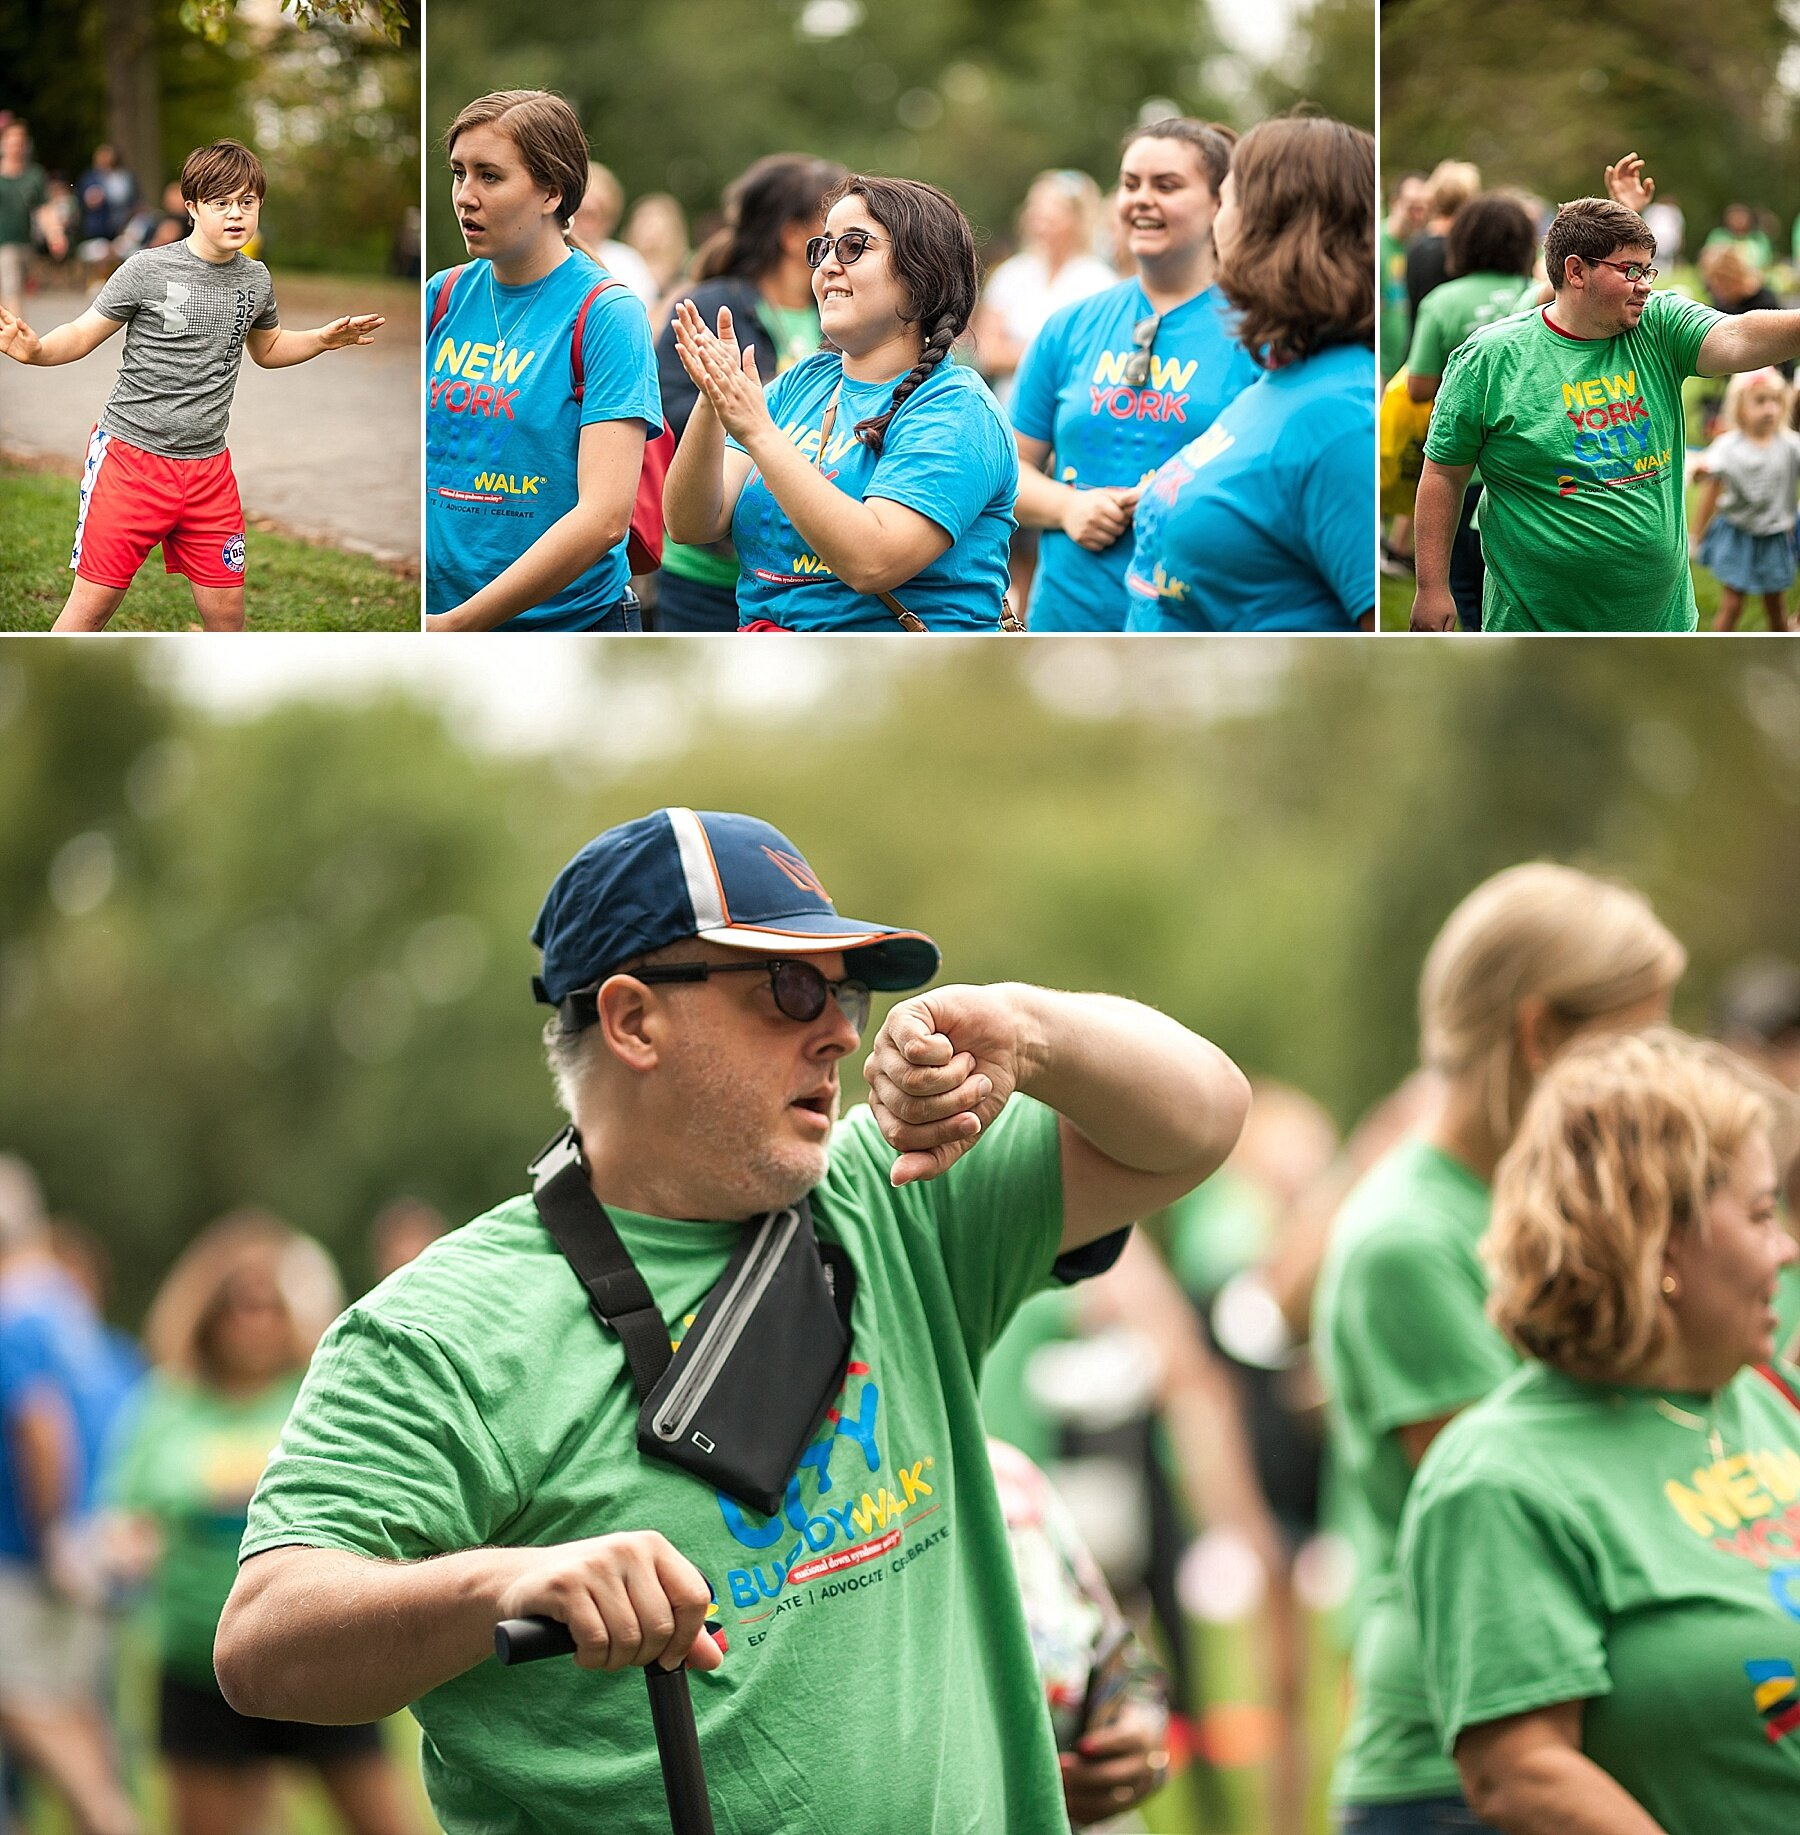 Wendy Zook Photography | NDSS Event, NDSS Event photographer, Buddy Walk NYC 2019, New York City Buddy Walk, Down Syndrome awareness, Down syndrome awareness event, DS event